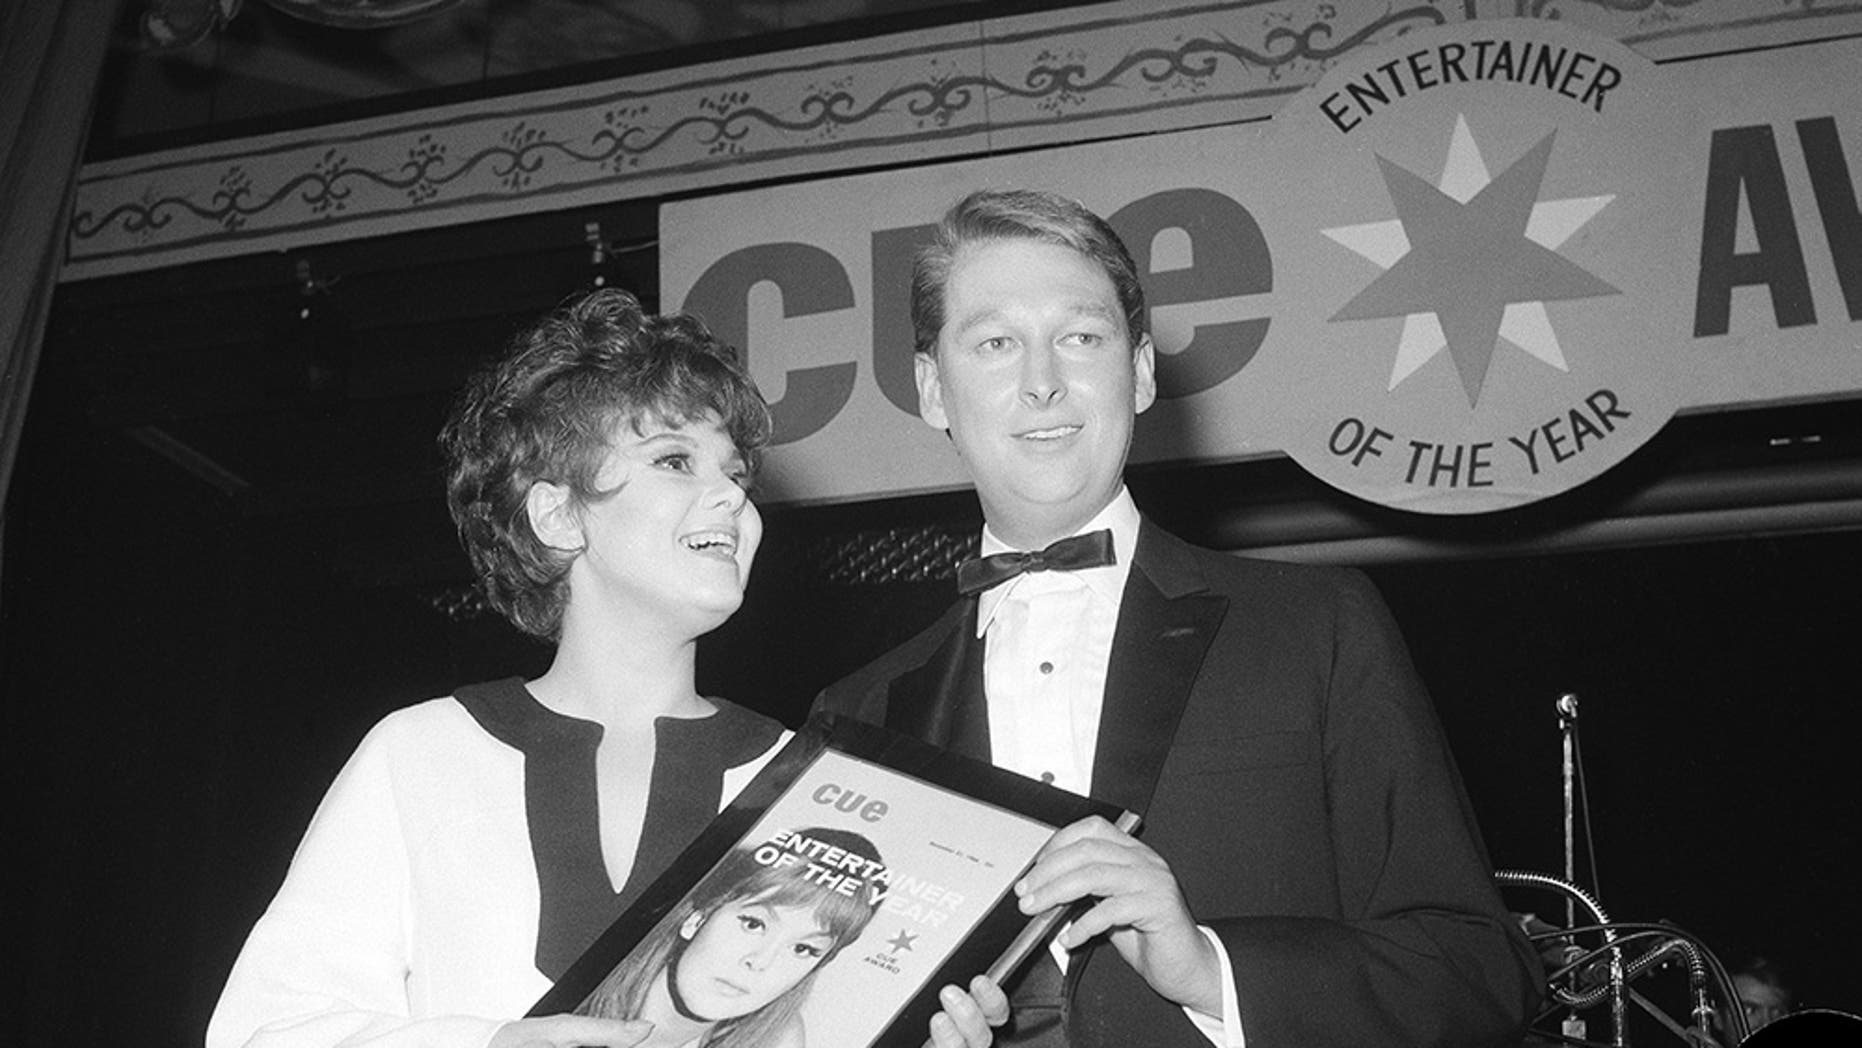 """FILE - In this Jan. 4, 1967 file photo, Barbara Harris, star of """"The Apple Tree"""" receives Cue Magazine's """"Entertainer of the Year"""" award from last year's winner, director Mike Nichols in New York. Harris, the Tony-winning actress whose intelligence, impish good looks and winsomely neurotic manner brightened Broadway musicals in the '60s and films such as """"Nashville,"""" """"Freaky Friday"""" and """"A Thousand Clowns"""" has died. She was 83."""